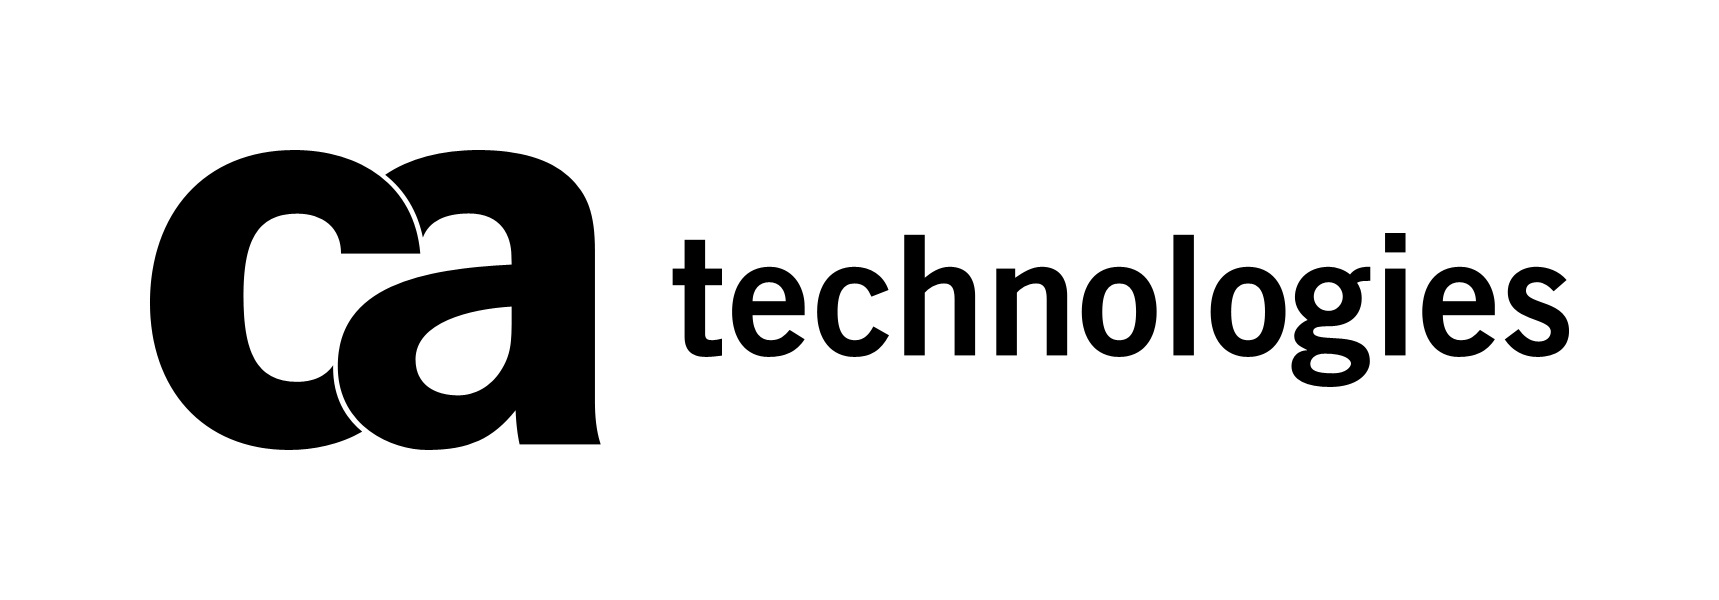 Innominds Announces Partnership with CA Technologies